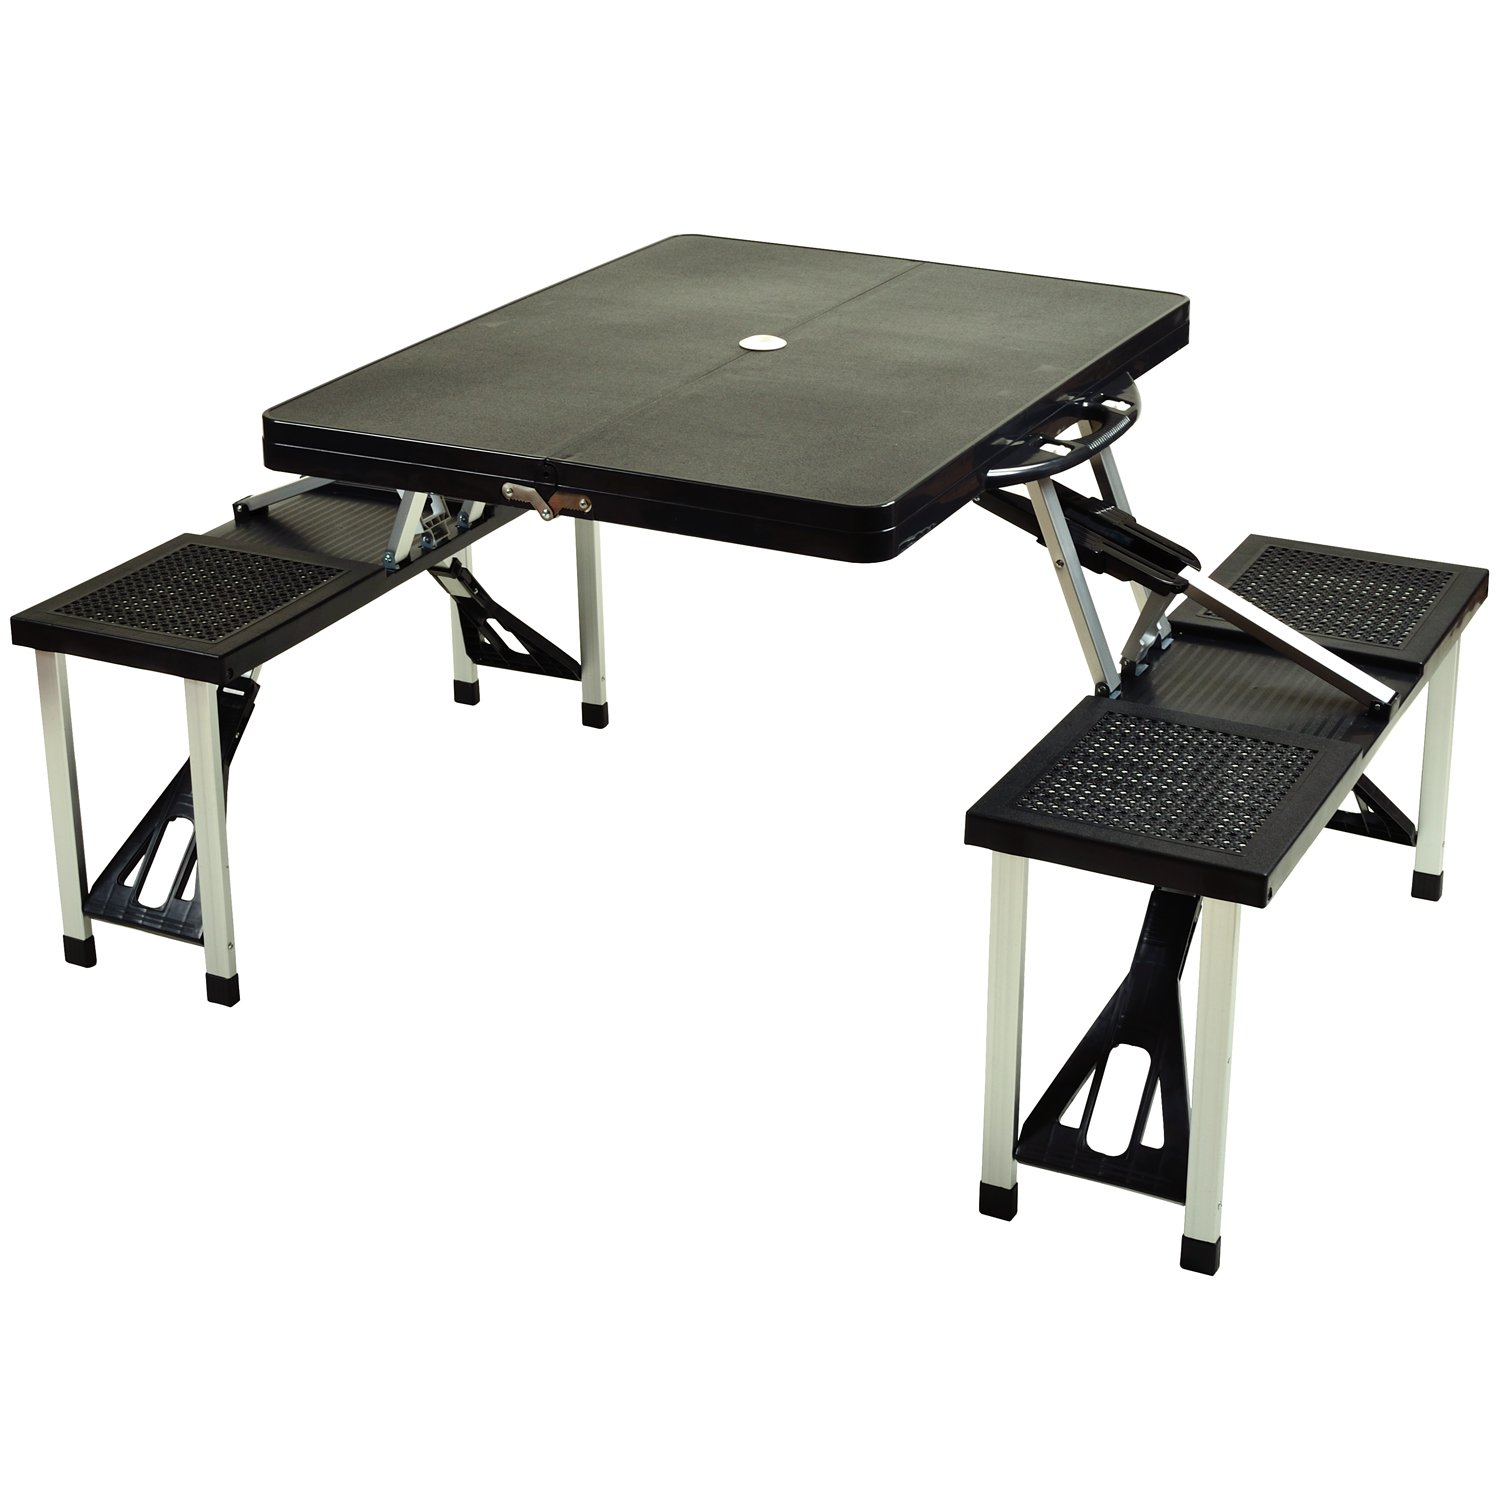 Folding Table And Chairs Popular Of Small Folding Table